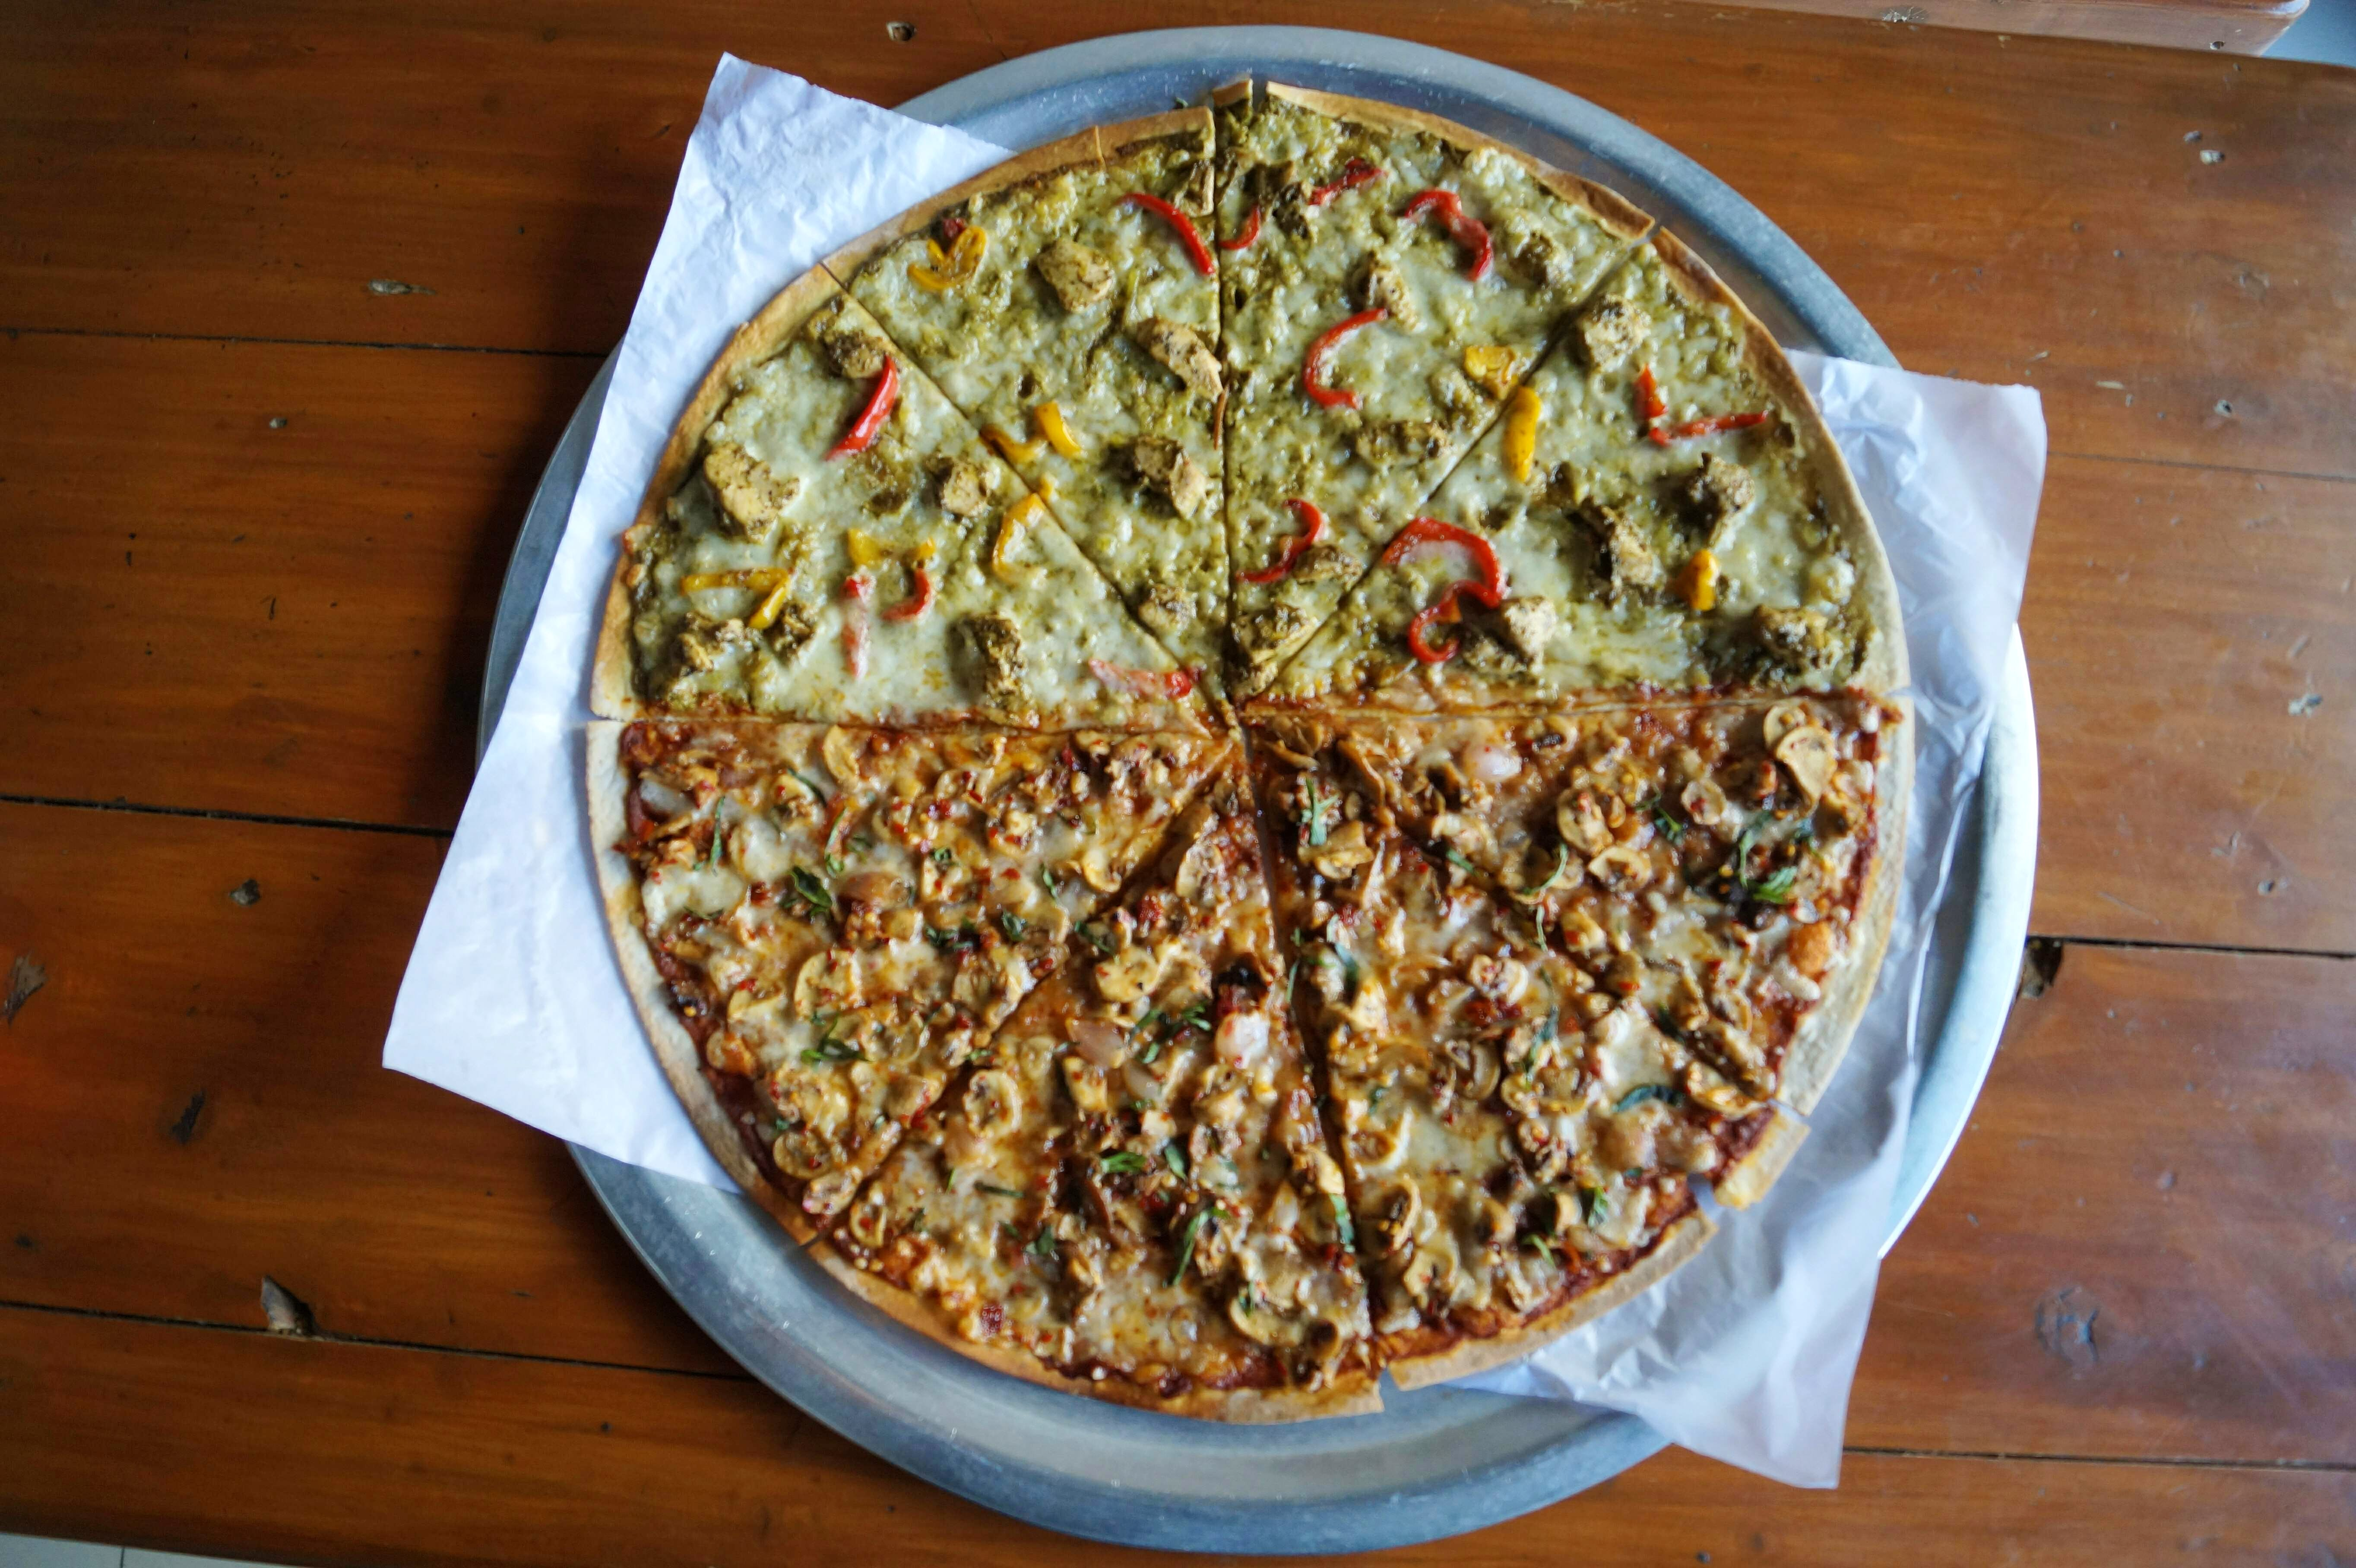 Dish,Food,Cuisine,Ingredient,Produce,Manakish,Pizza,Recipe,Zwiebelkuchen,American food